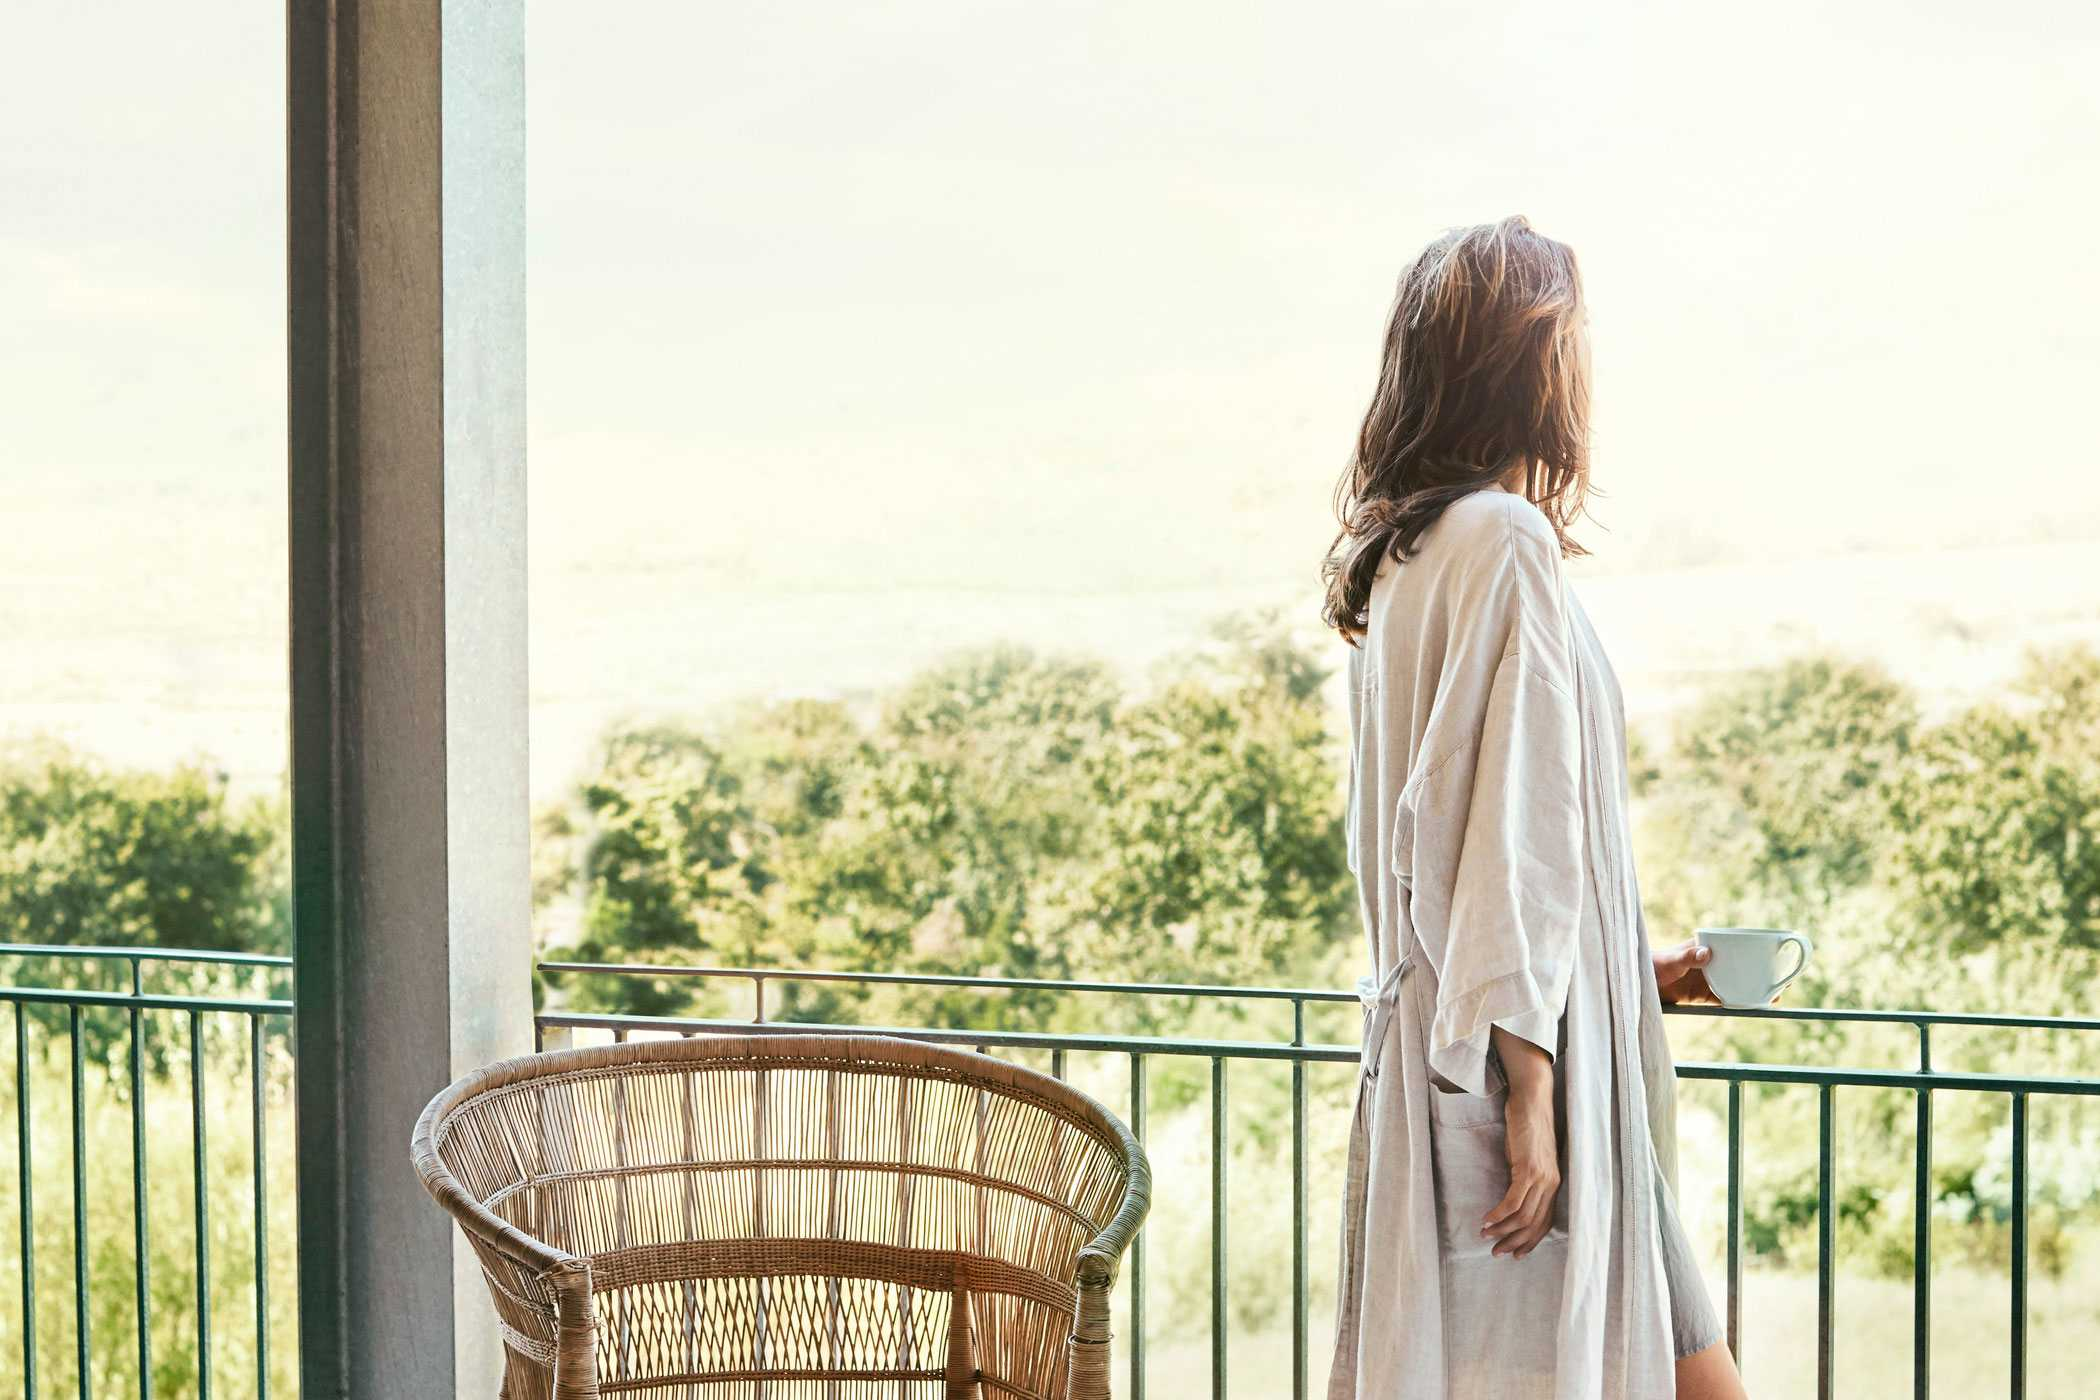 wesed-197236-Woman-on-Terrace-Med